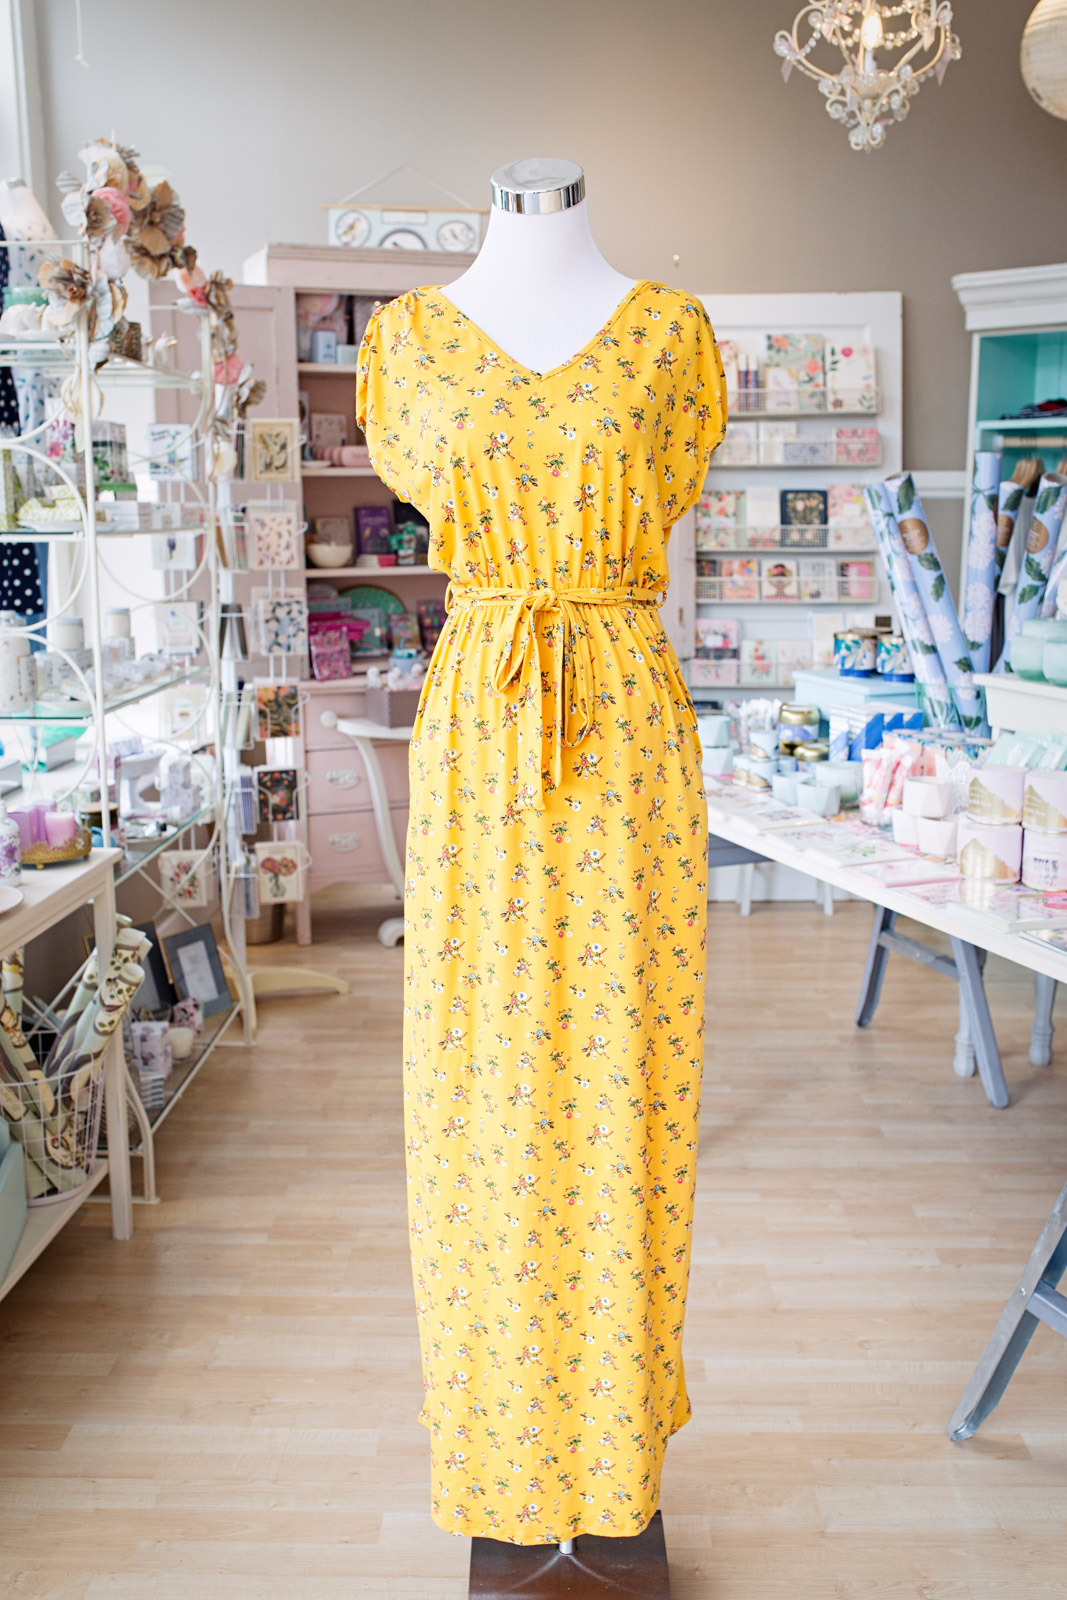 Meadow boutique seattle retail clothing store Yuliya Rae photography branding services-39.jpg